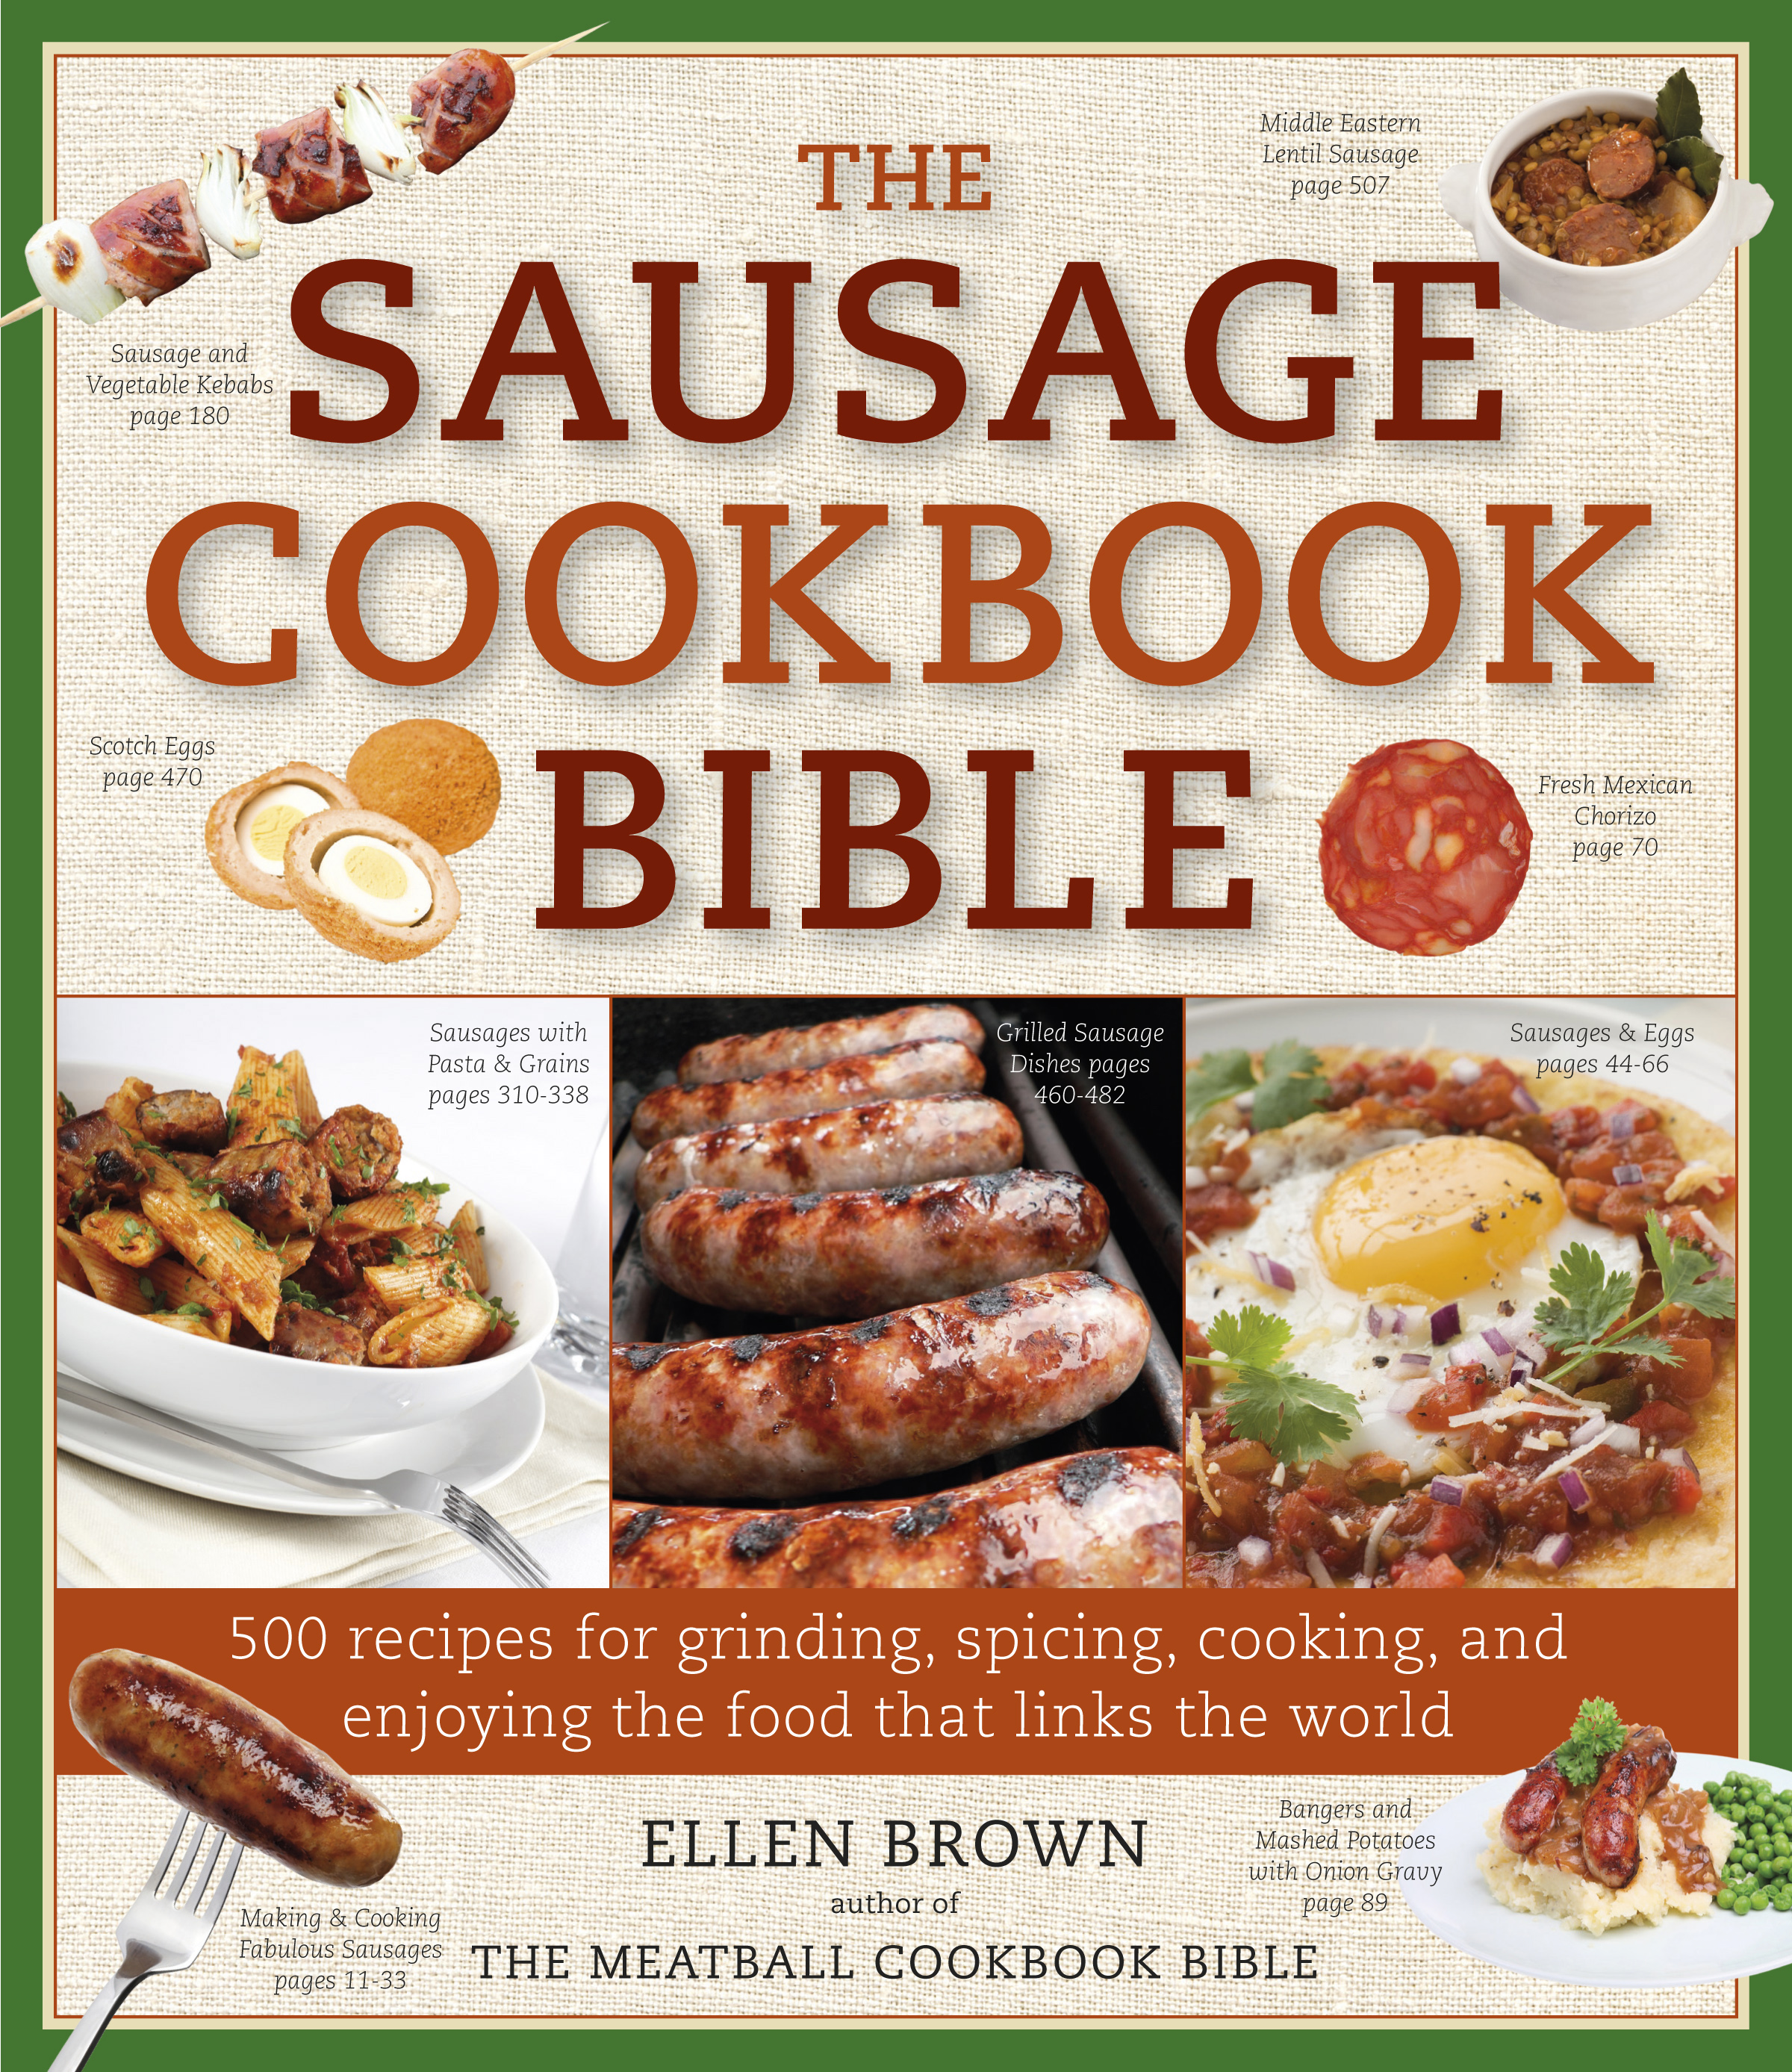 the sausage cookbook bible book by ellen brown official